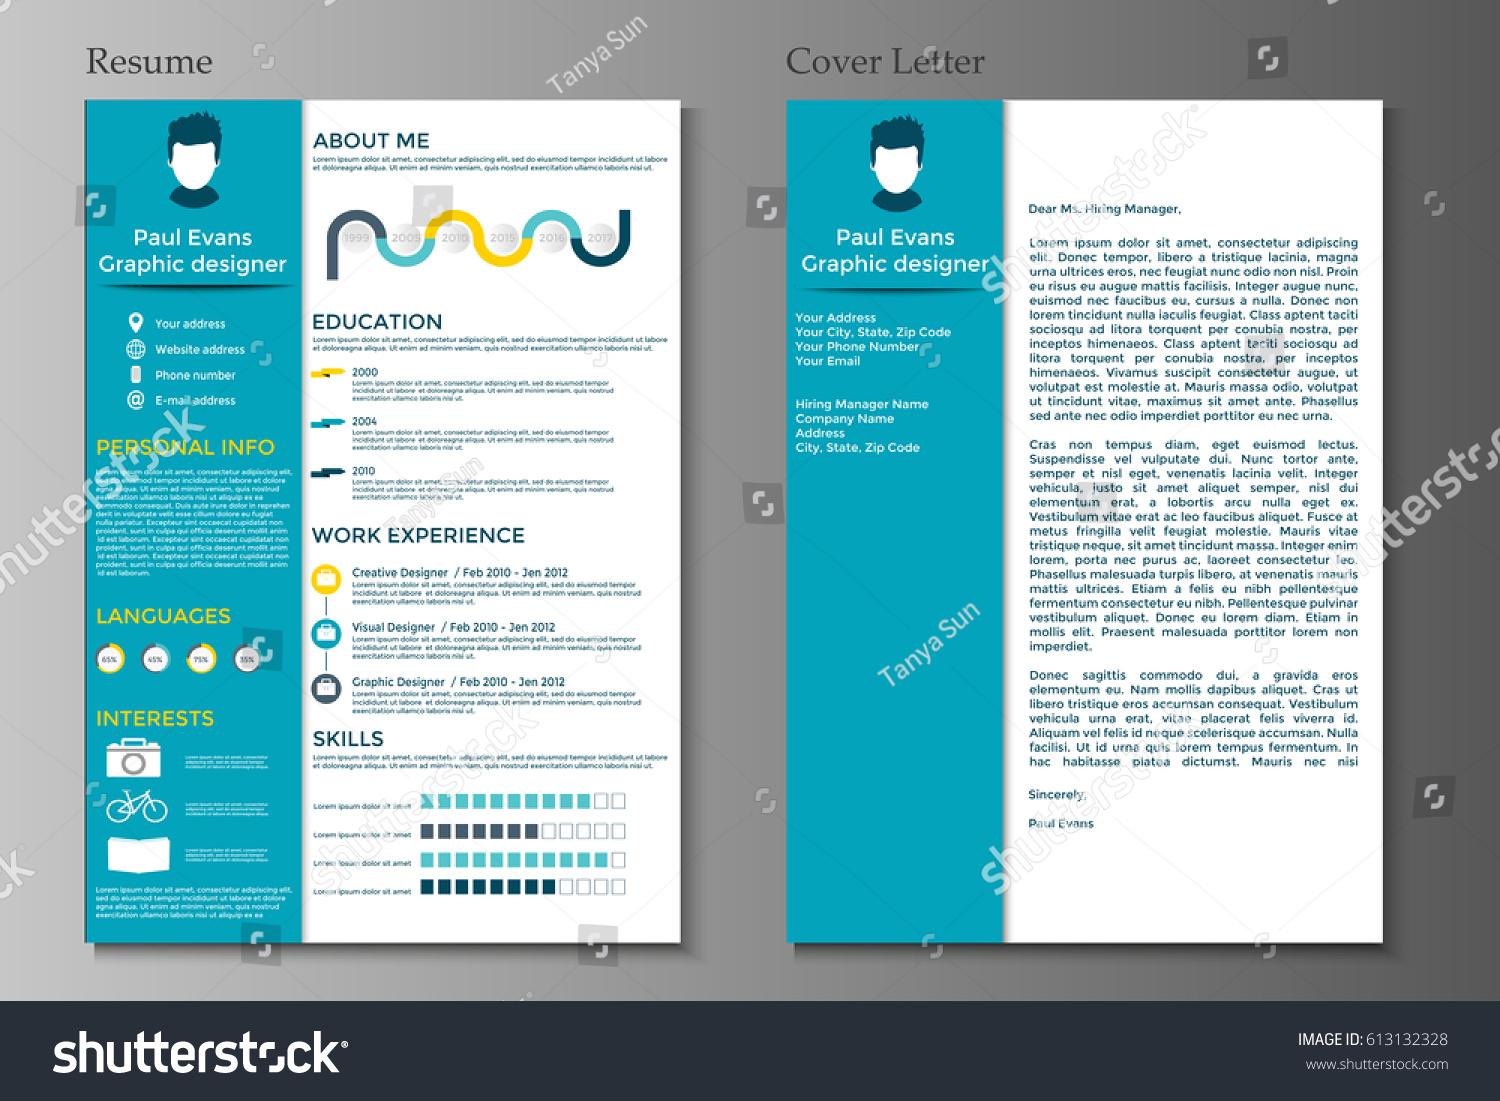 Resume Cover Letter Collection Modern Cv Stock Vector 613132328  Shutterstock